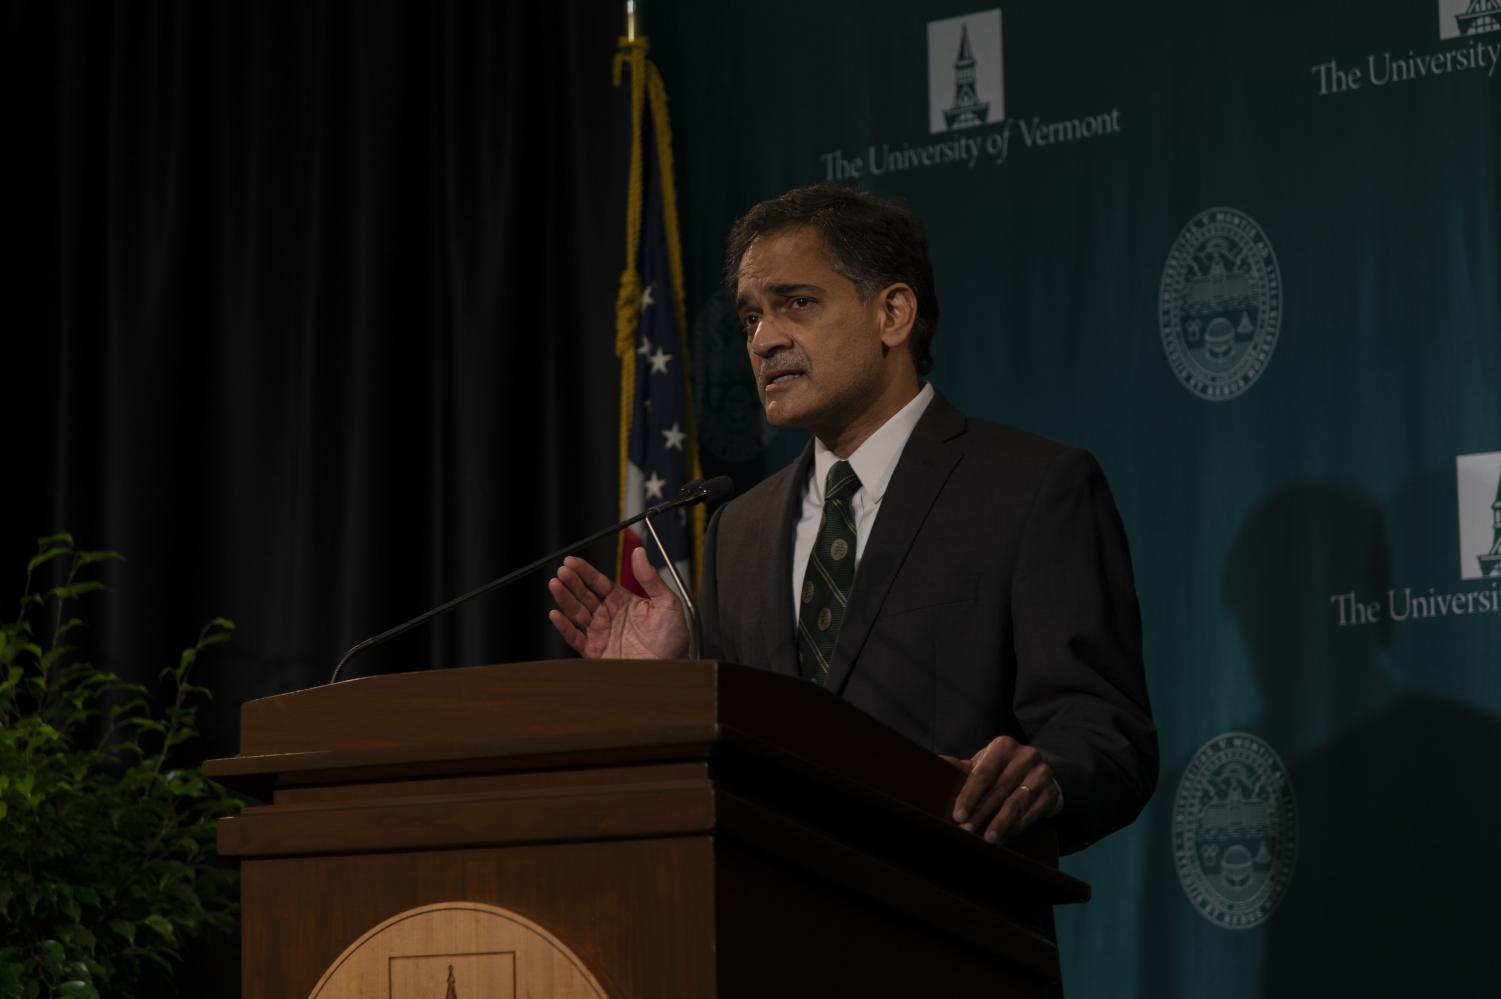 UVM President Suresh Garimella announced UVM will freeze tuition for the 2020-2021 school year at an Oct. 26 press conference, marking the third consecutive year of the school